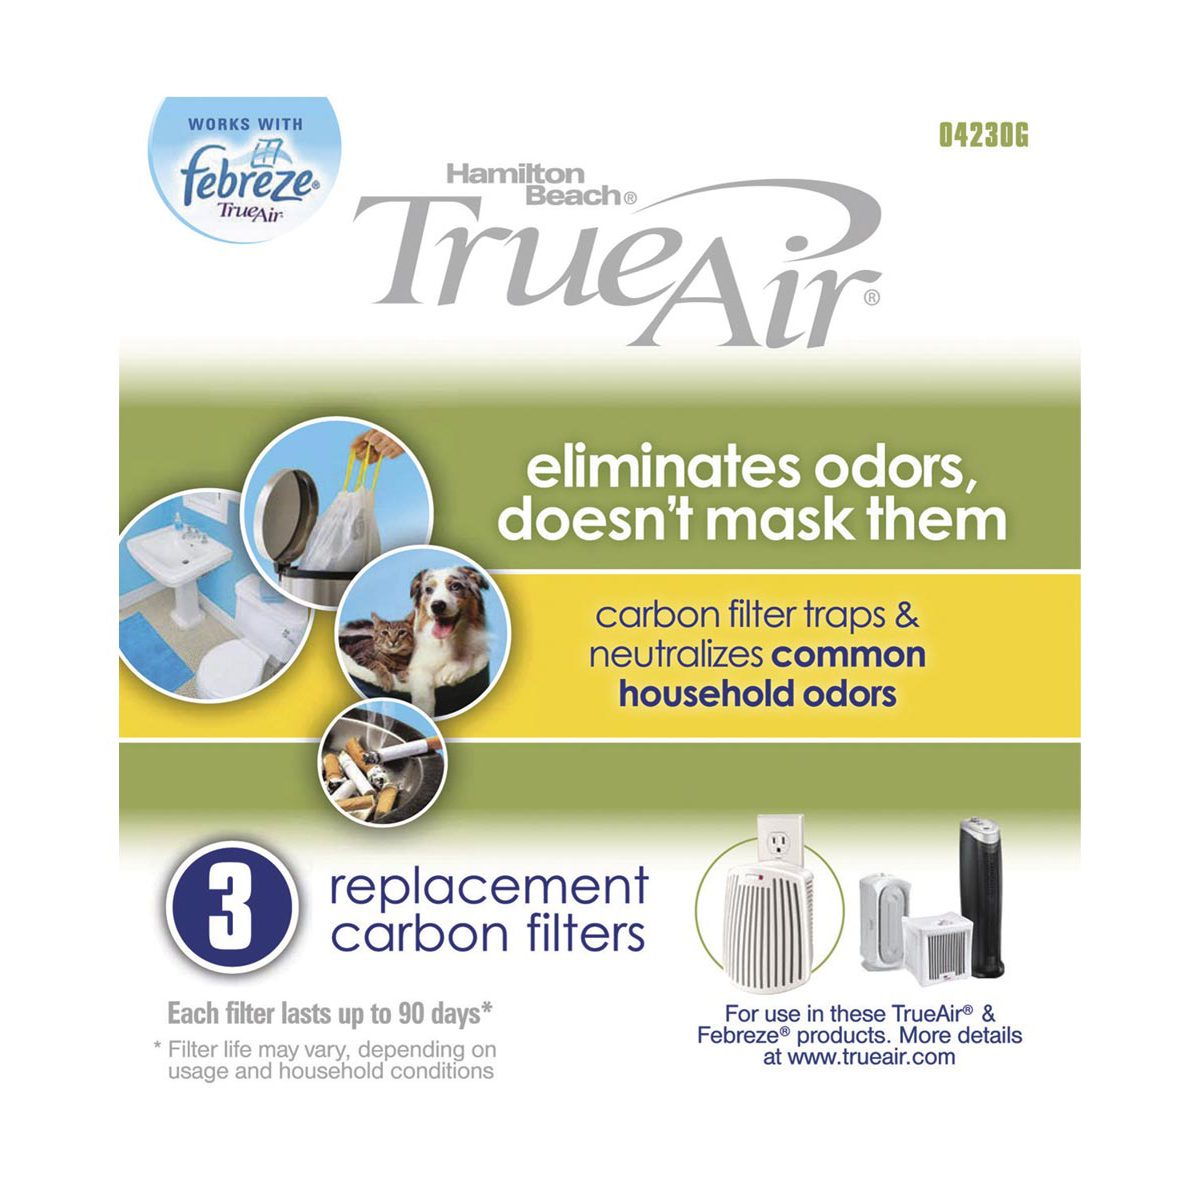 True Air® Replacement Carbon Filter 3 Pack (04230G)